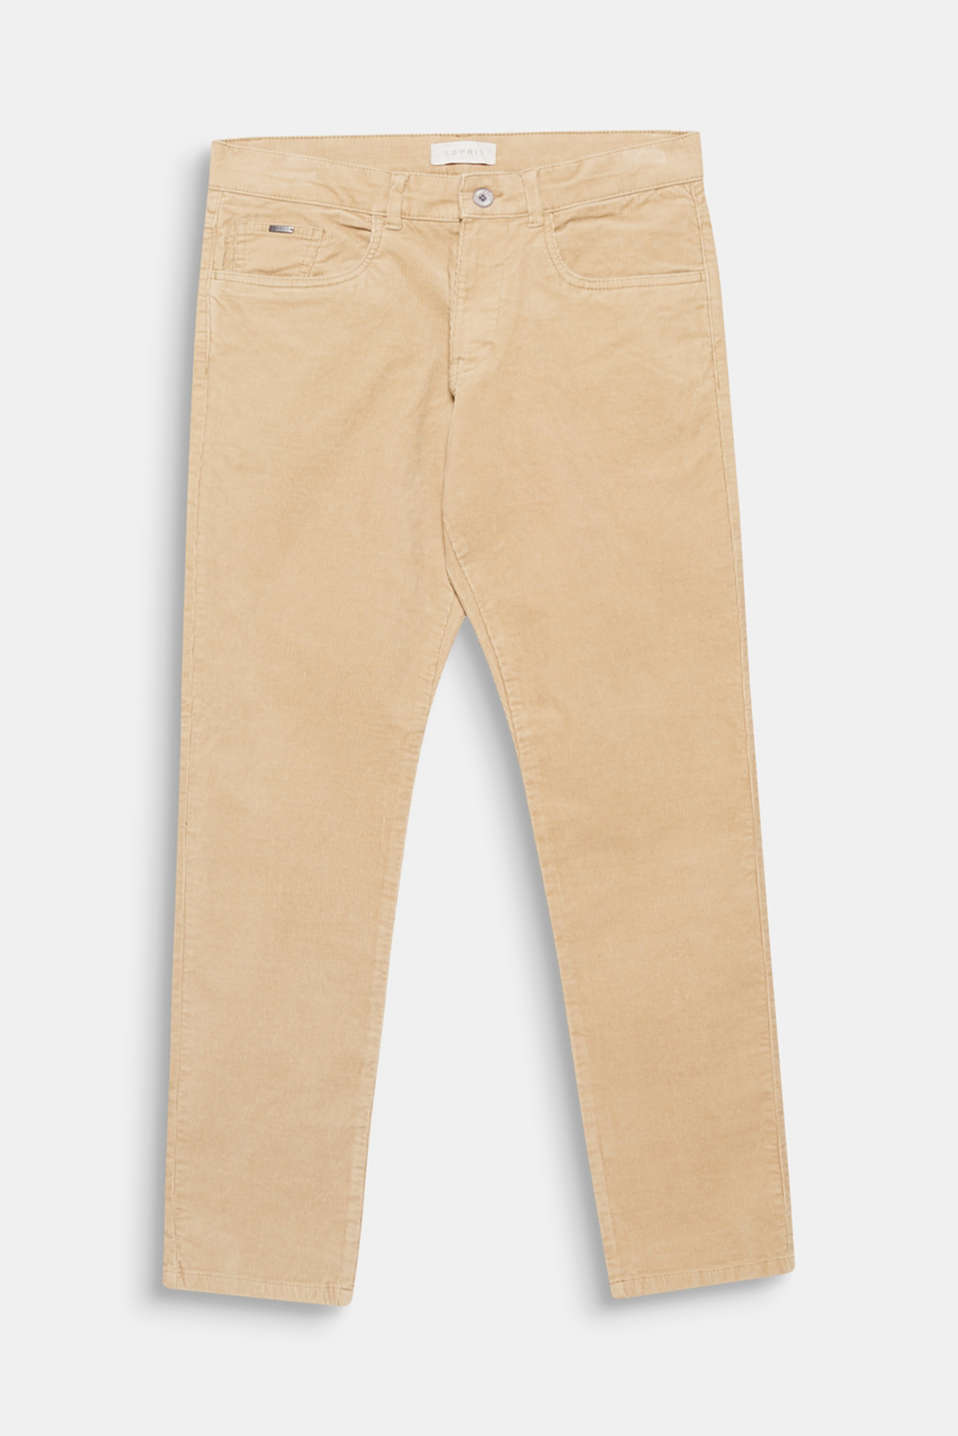 Trend: corduroy. These slim-fitting trousers made of striking cotton corduroy with added stretch for comfort are a modern trend piece for your wardrobe.